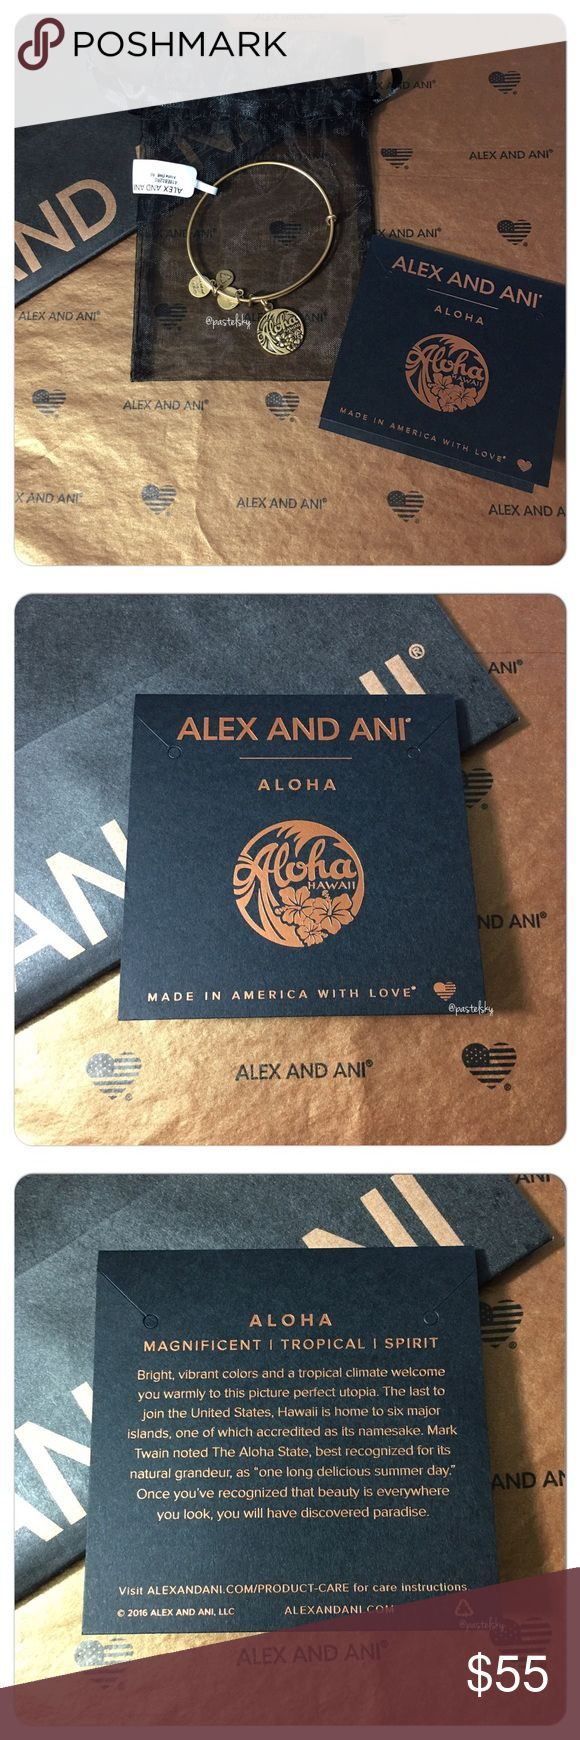 ON SALE TODAY ONLY!  aloha hawaii bracelet price for today only, will ship tuesday!  NEW with tags in perfect condition. EXCLUSIVELY sold in hawaii! not available online or in stores.   purchase includes: ∙ gold bracelet ∙ card ∙ mesh jewelry bag  due to lighting- color of actual item may vary from photos.  please don't hesitate to ask questions. happy POSHing    price firm  i do not trade or take any transactions off poshmark Alex and Ani Jewelry Bracelets